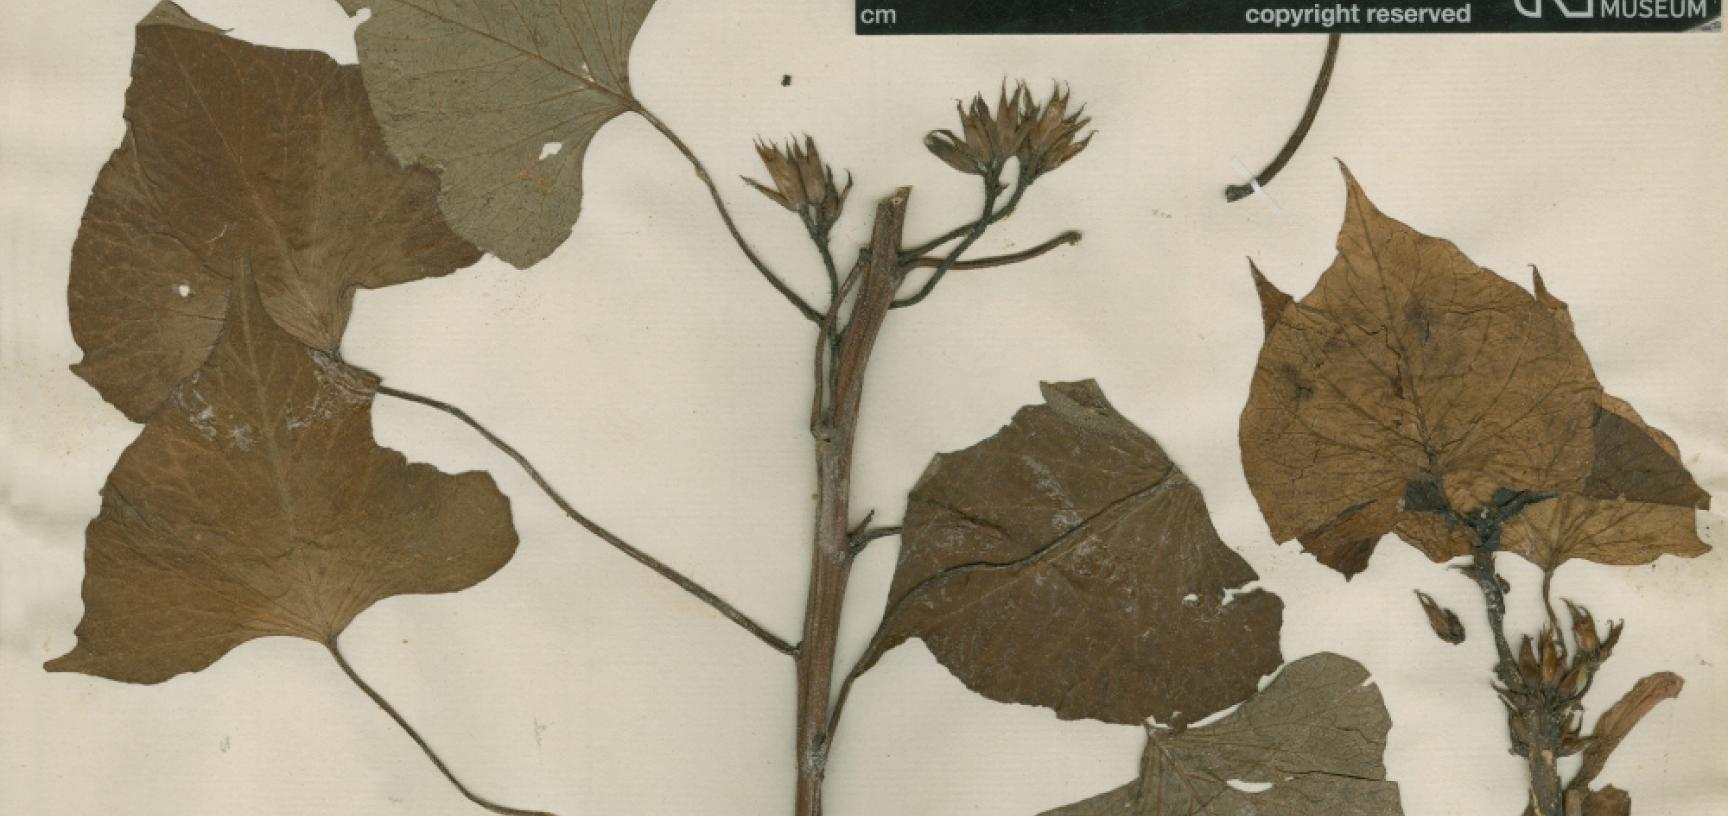 1 sweet potato specimen collected by banks and solander in 1769 from society islands copyright the trustees of the natural history museum of london